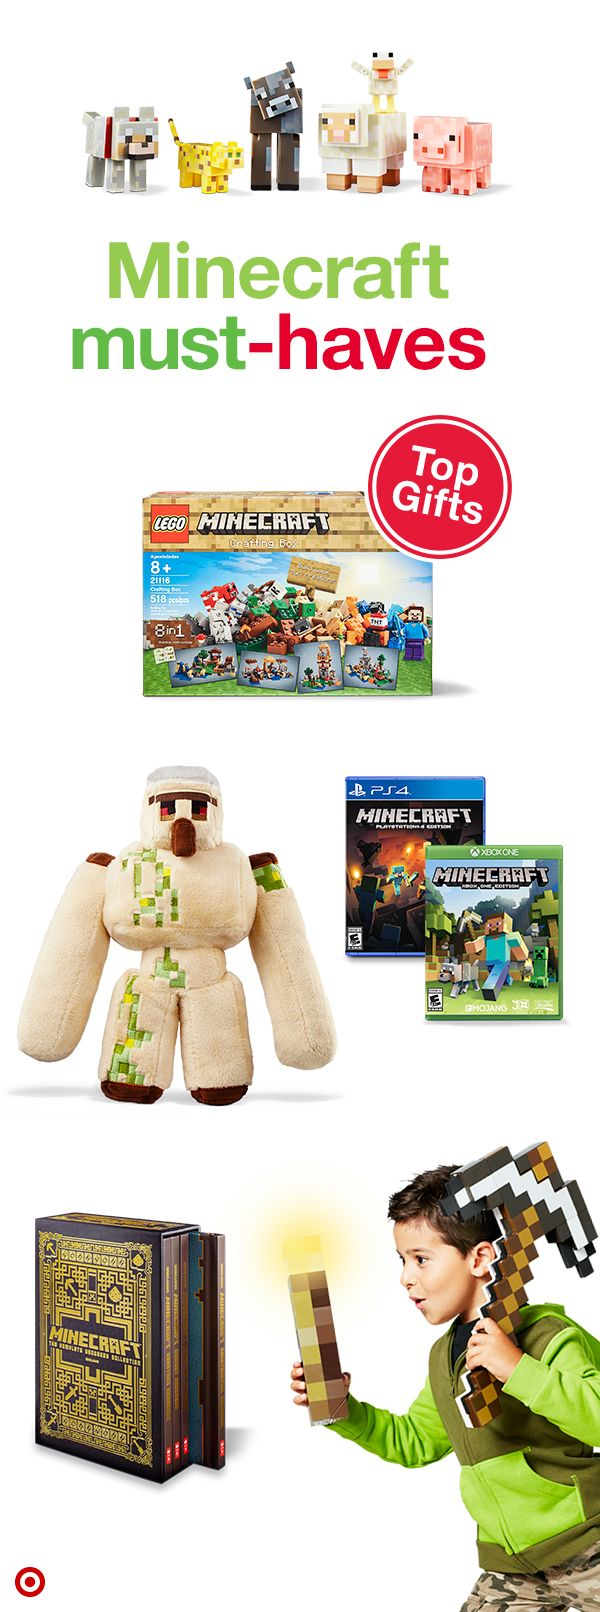 Perfect for the builder on your Christmas list, Minecraft allows little gamers to imagine, build and explore a world of endless possibilities. Watch as they break and place blocks to create structures that help protect against nighttime monsters. Whether they play solo or with friends, they're in for a creative-fun time!